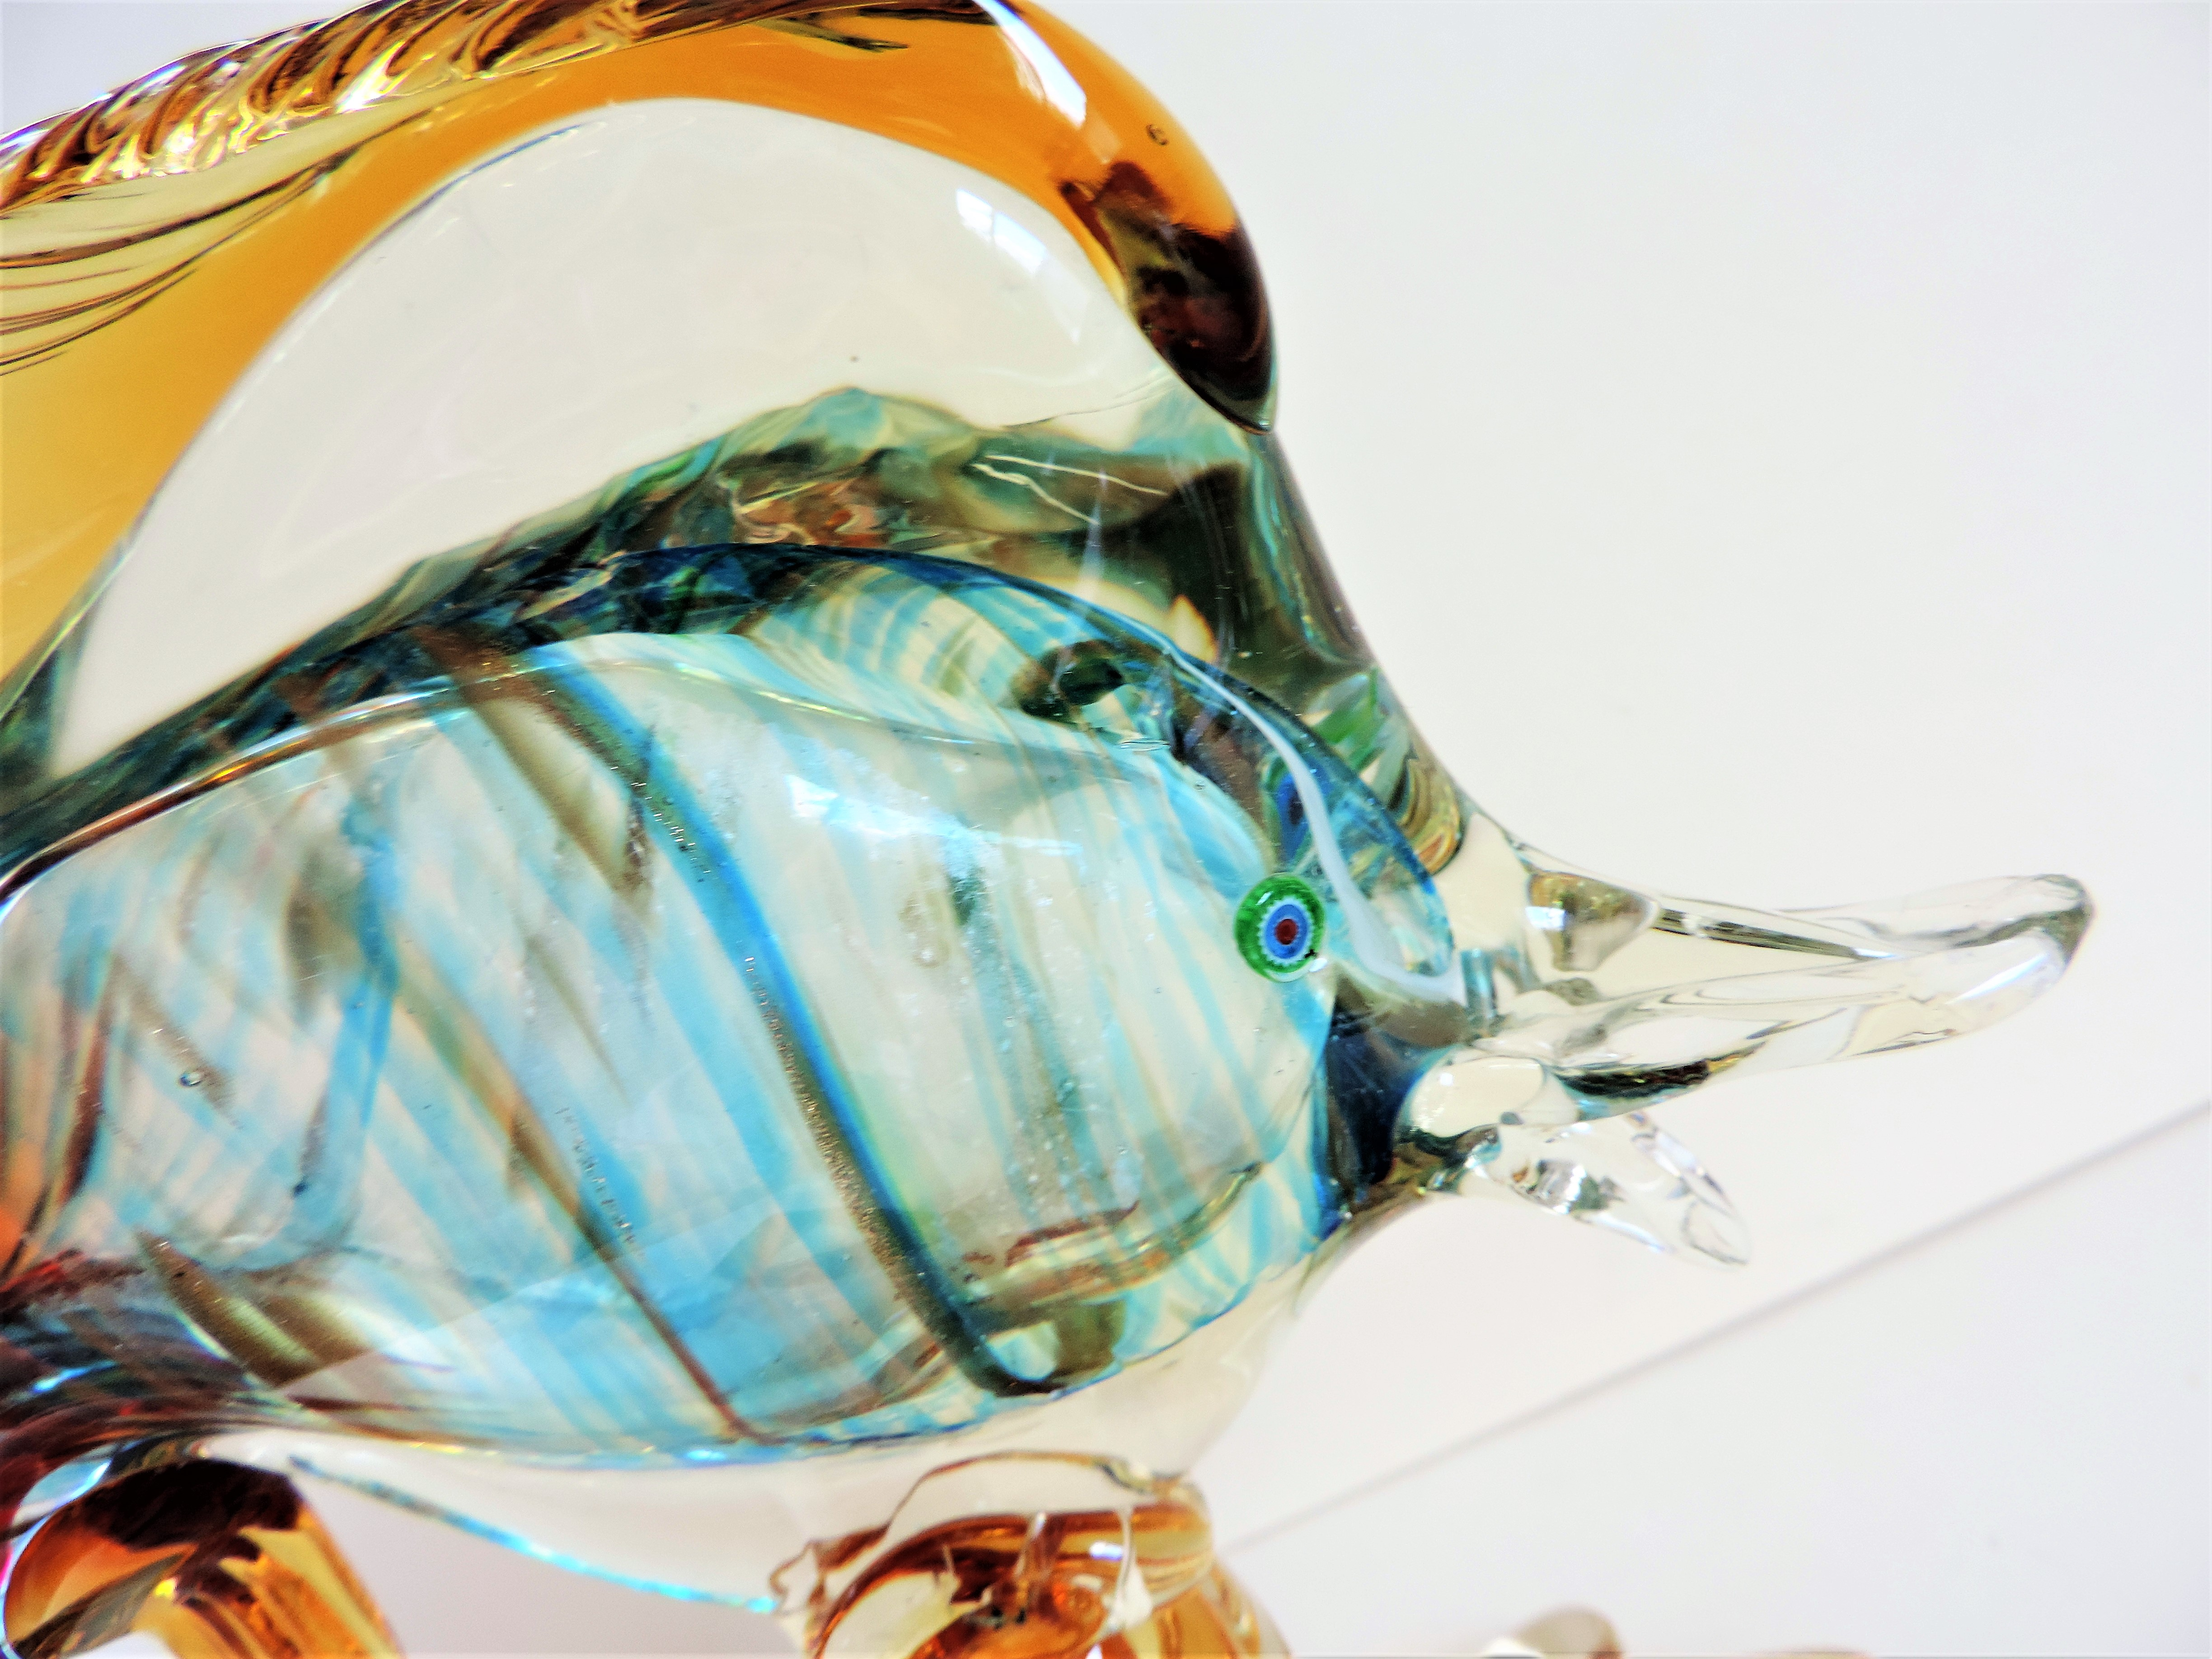 Vintage Murano Glass Fish Sculpture 28cm Tall - Image 7 of 7